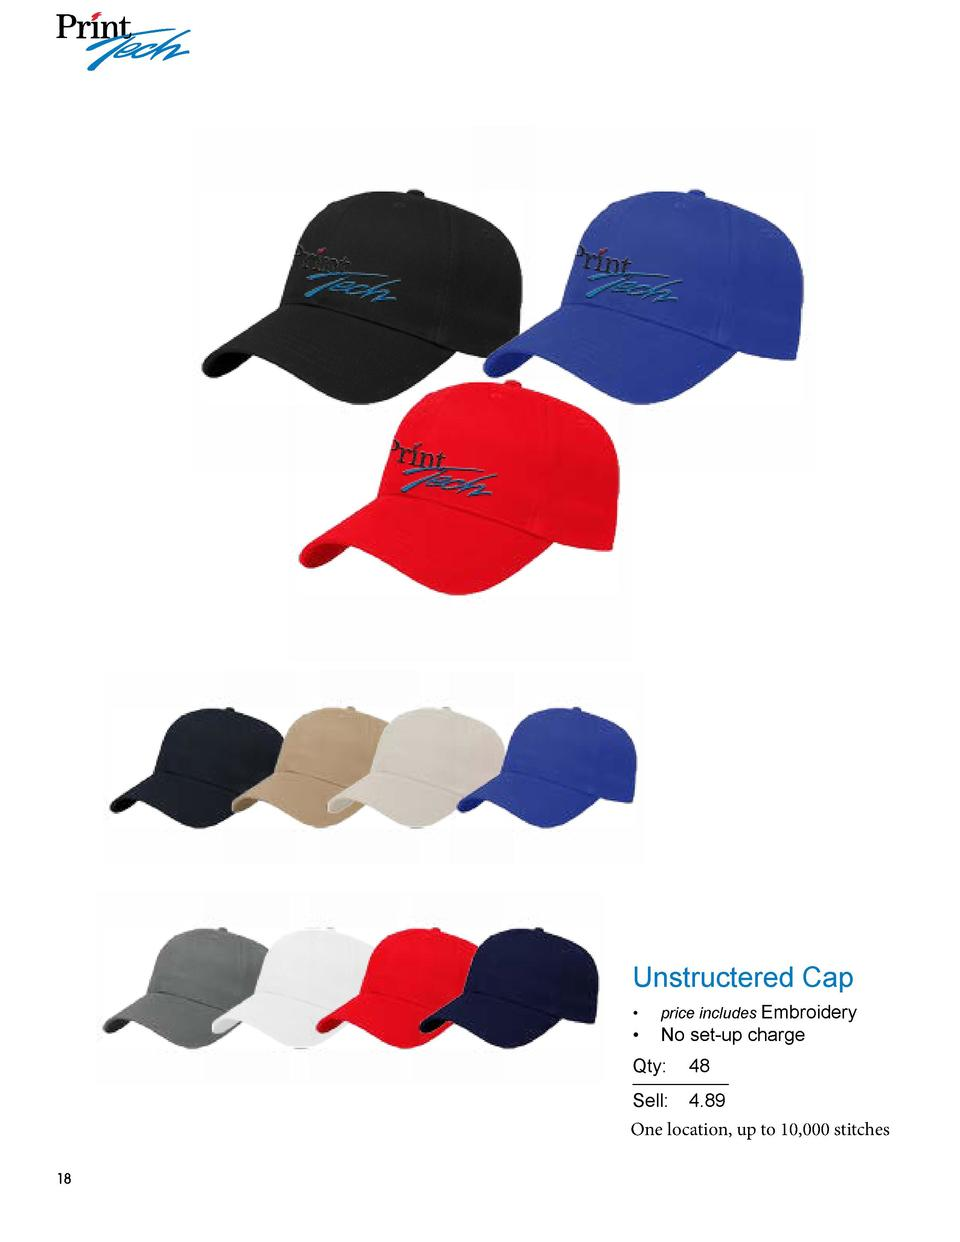 Unstructered Cap      price includes Embroidery      No set-up charge  Qty   48 Sell    4.89 One location, up to 10,000 st...